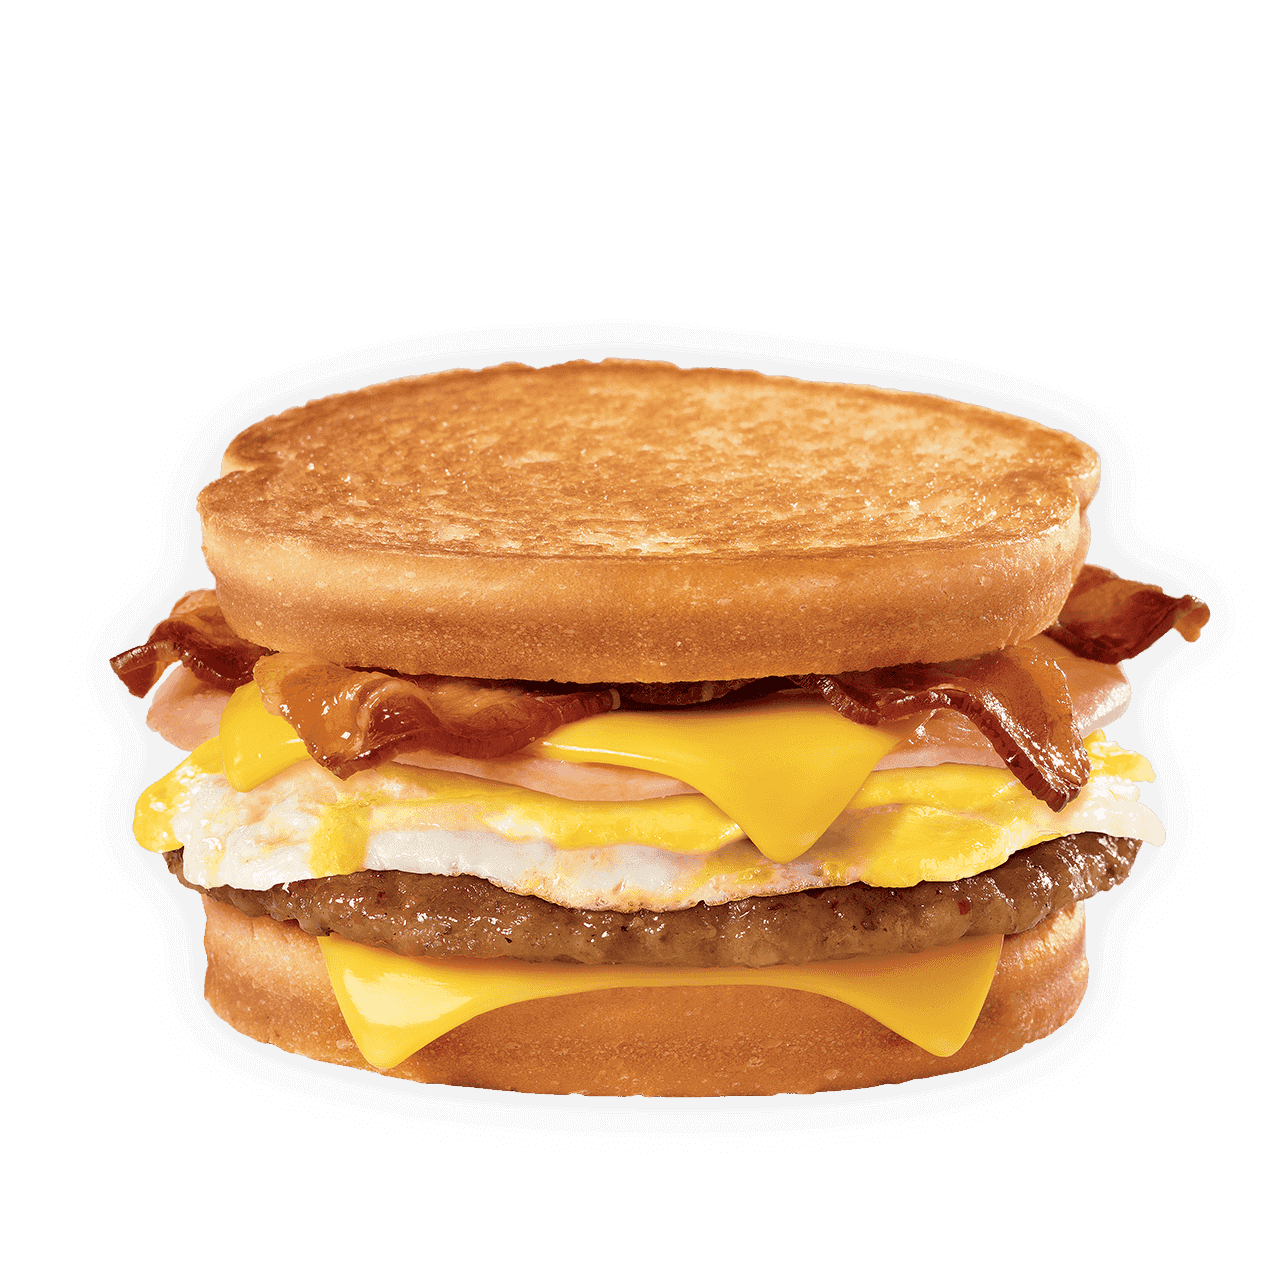 15 Meals At Jack In The Box For 500 Calories Or Less | Sausage Breakfast Jack | FastFoodMenuPrices.com